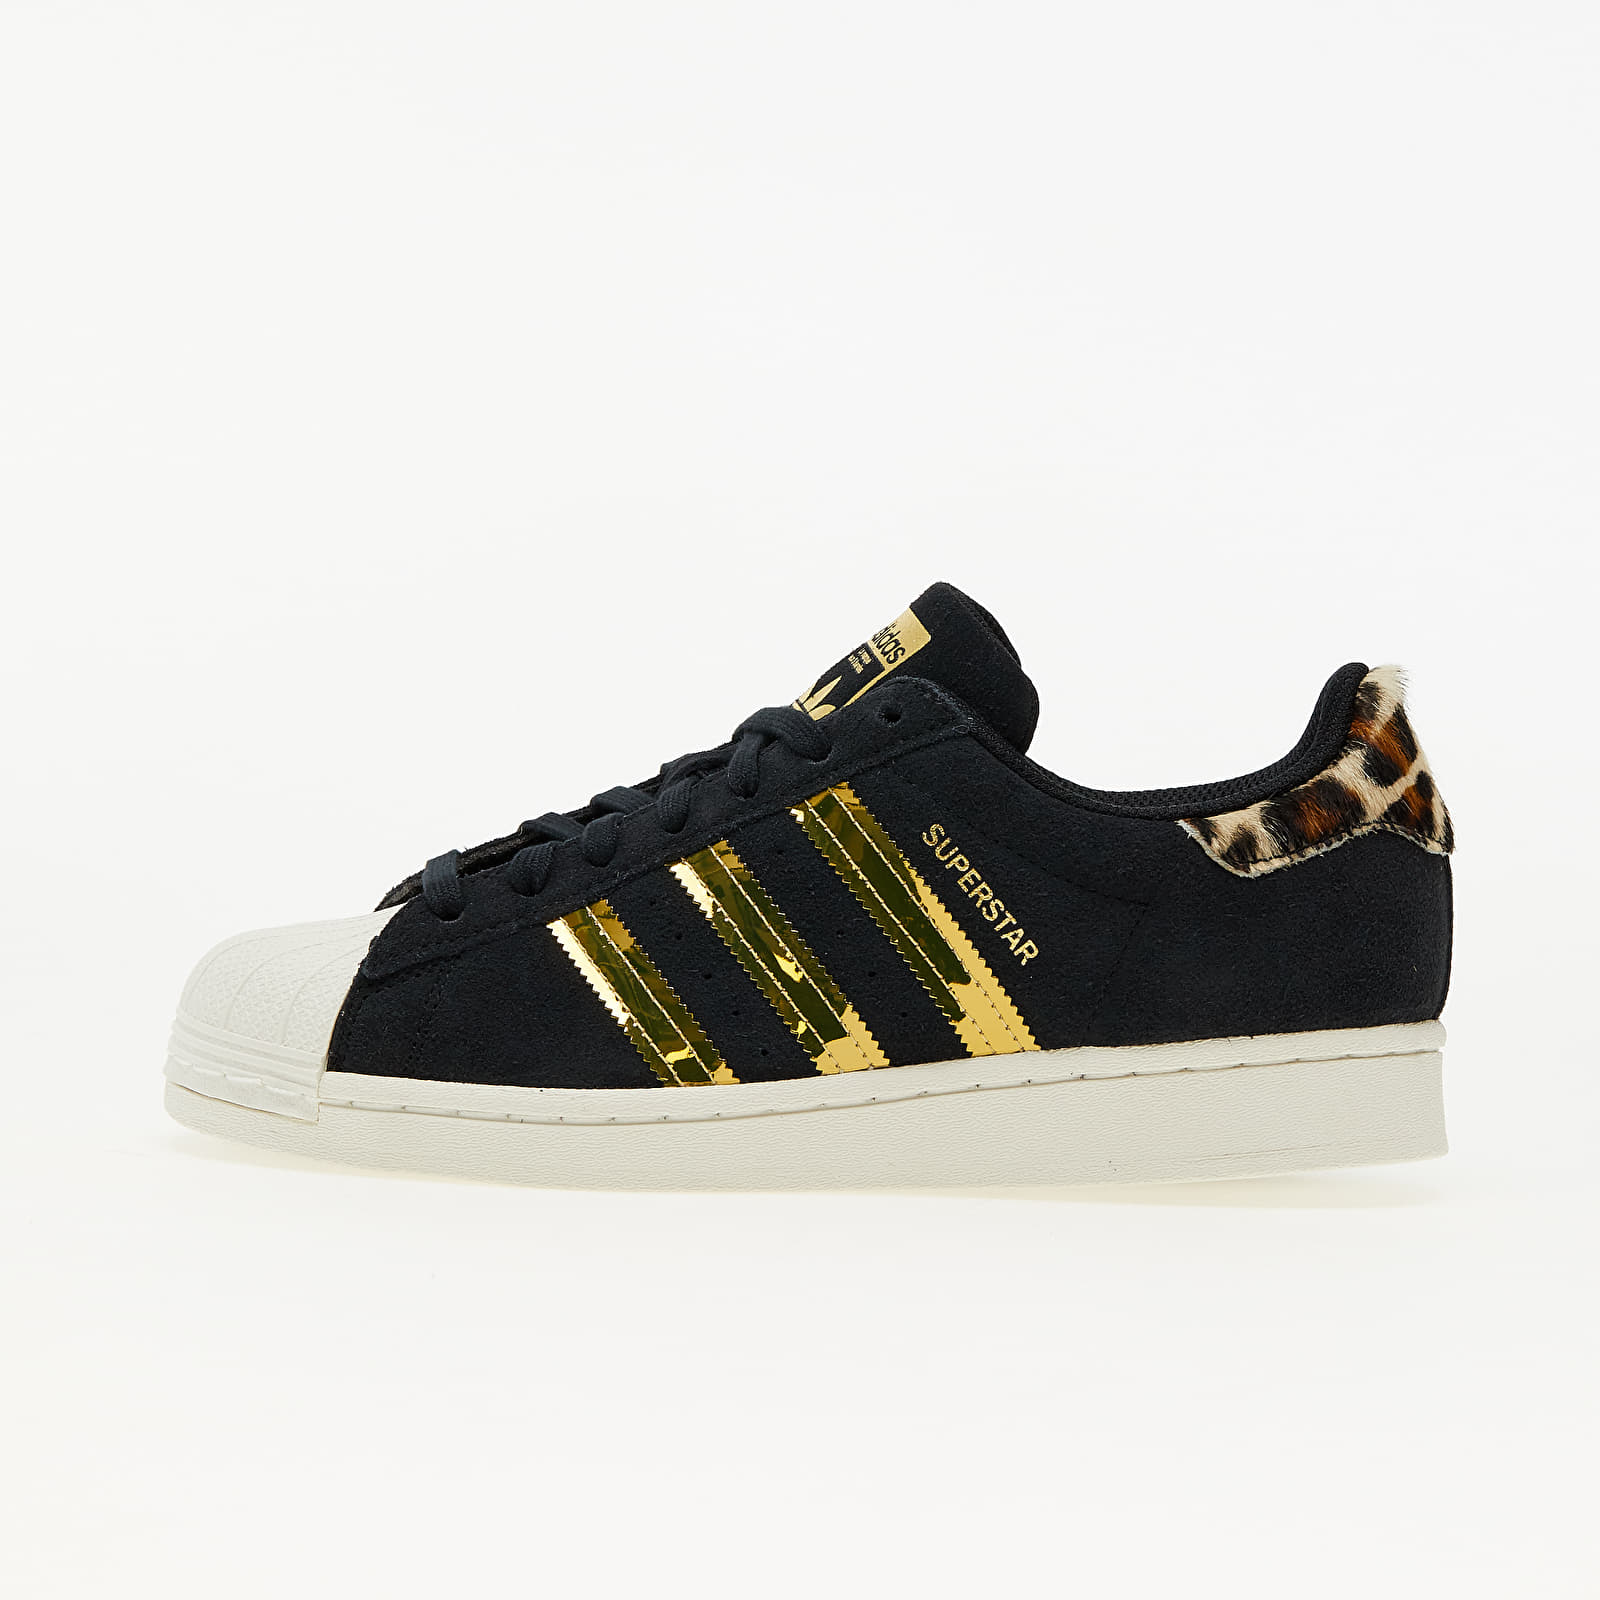 adidas Superstar W Core Black/ Off White/ Gold Metalic EUR 39 1/3